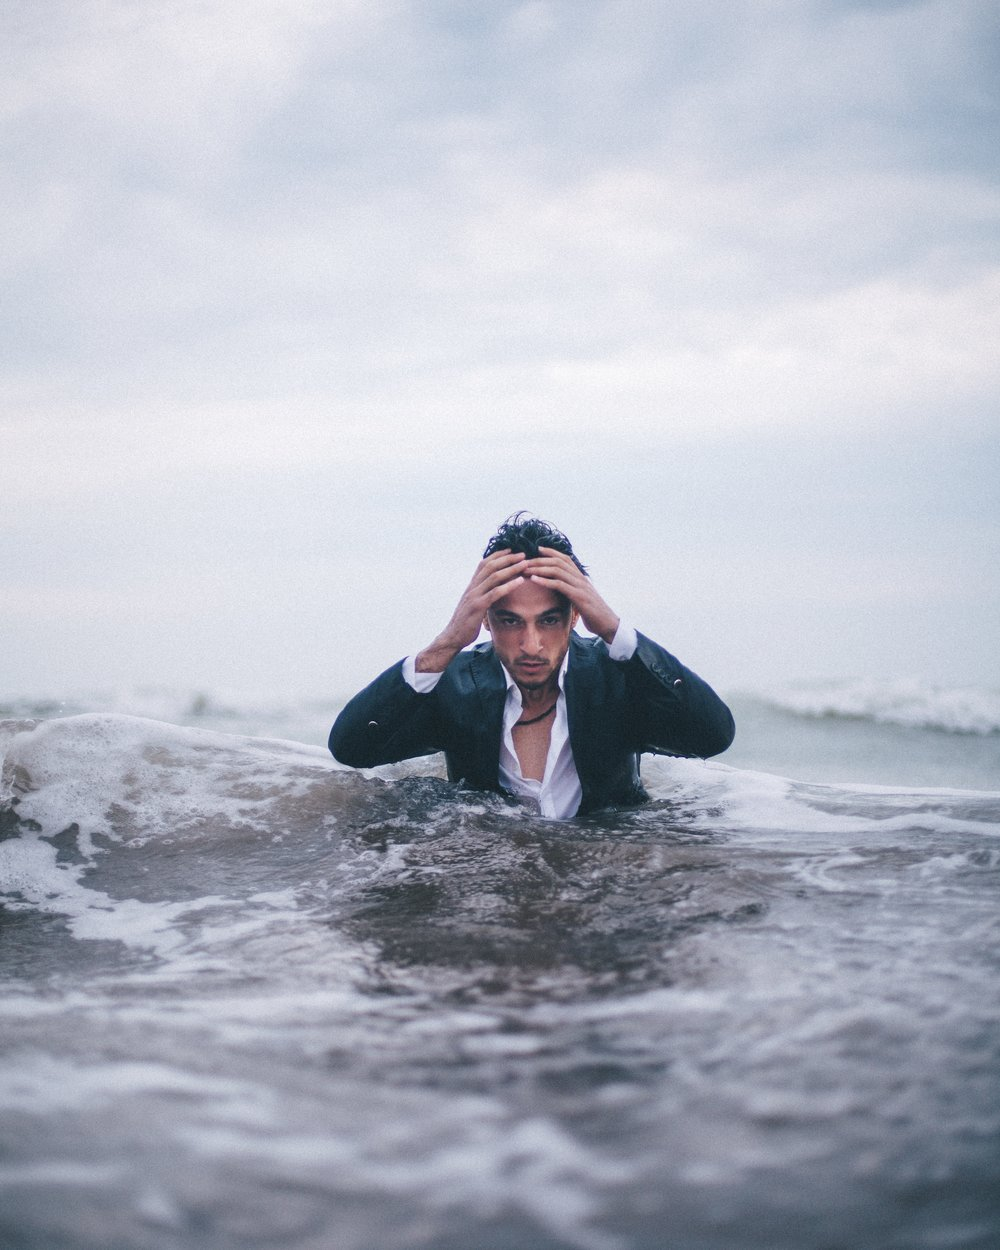 Drowning in Projects? - It doesn't have to be this way...